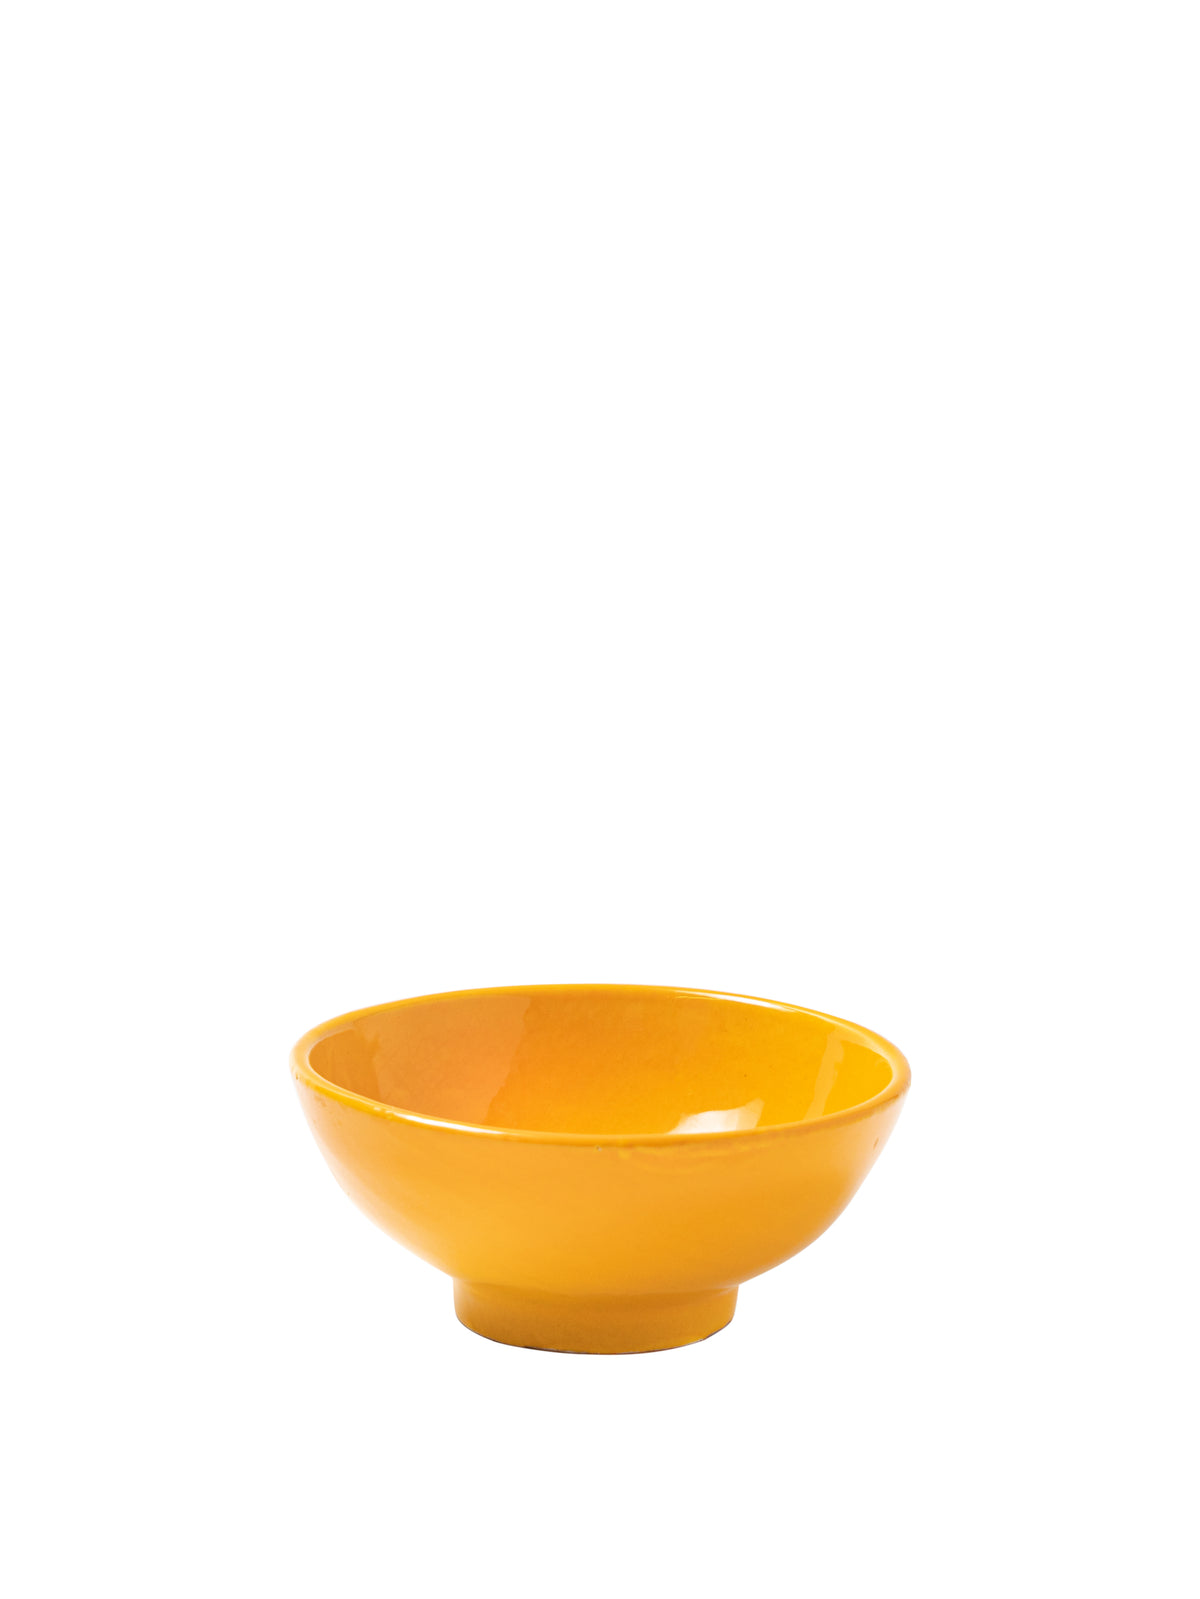 Casa Amarilla Small Bowl with Yellow Glaze